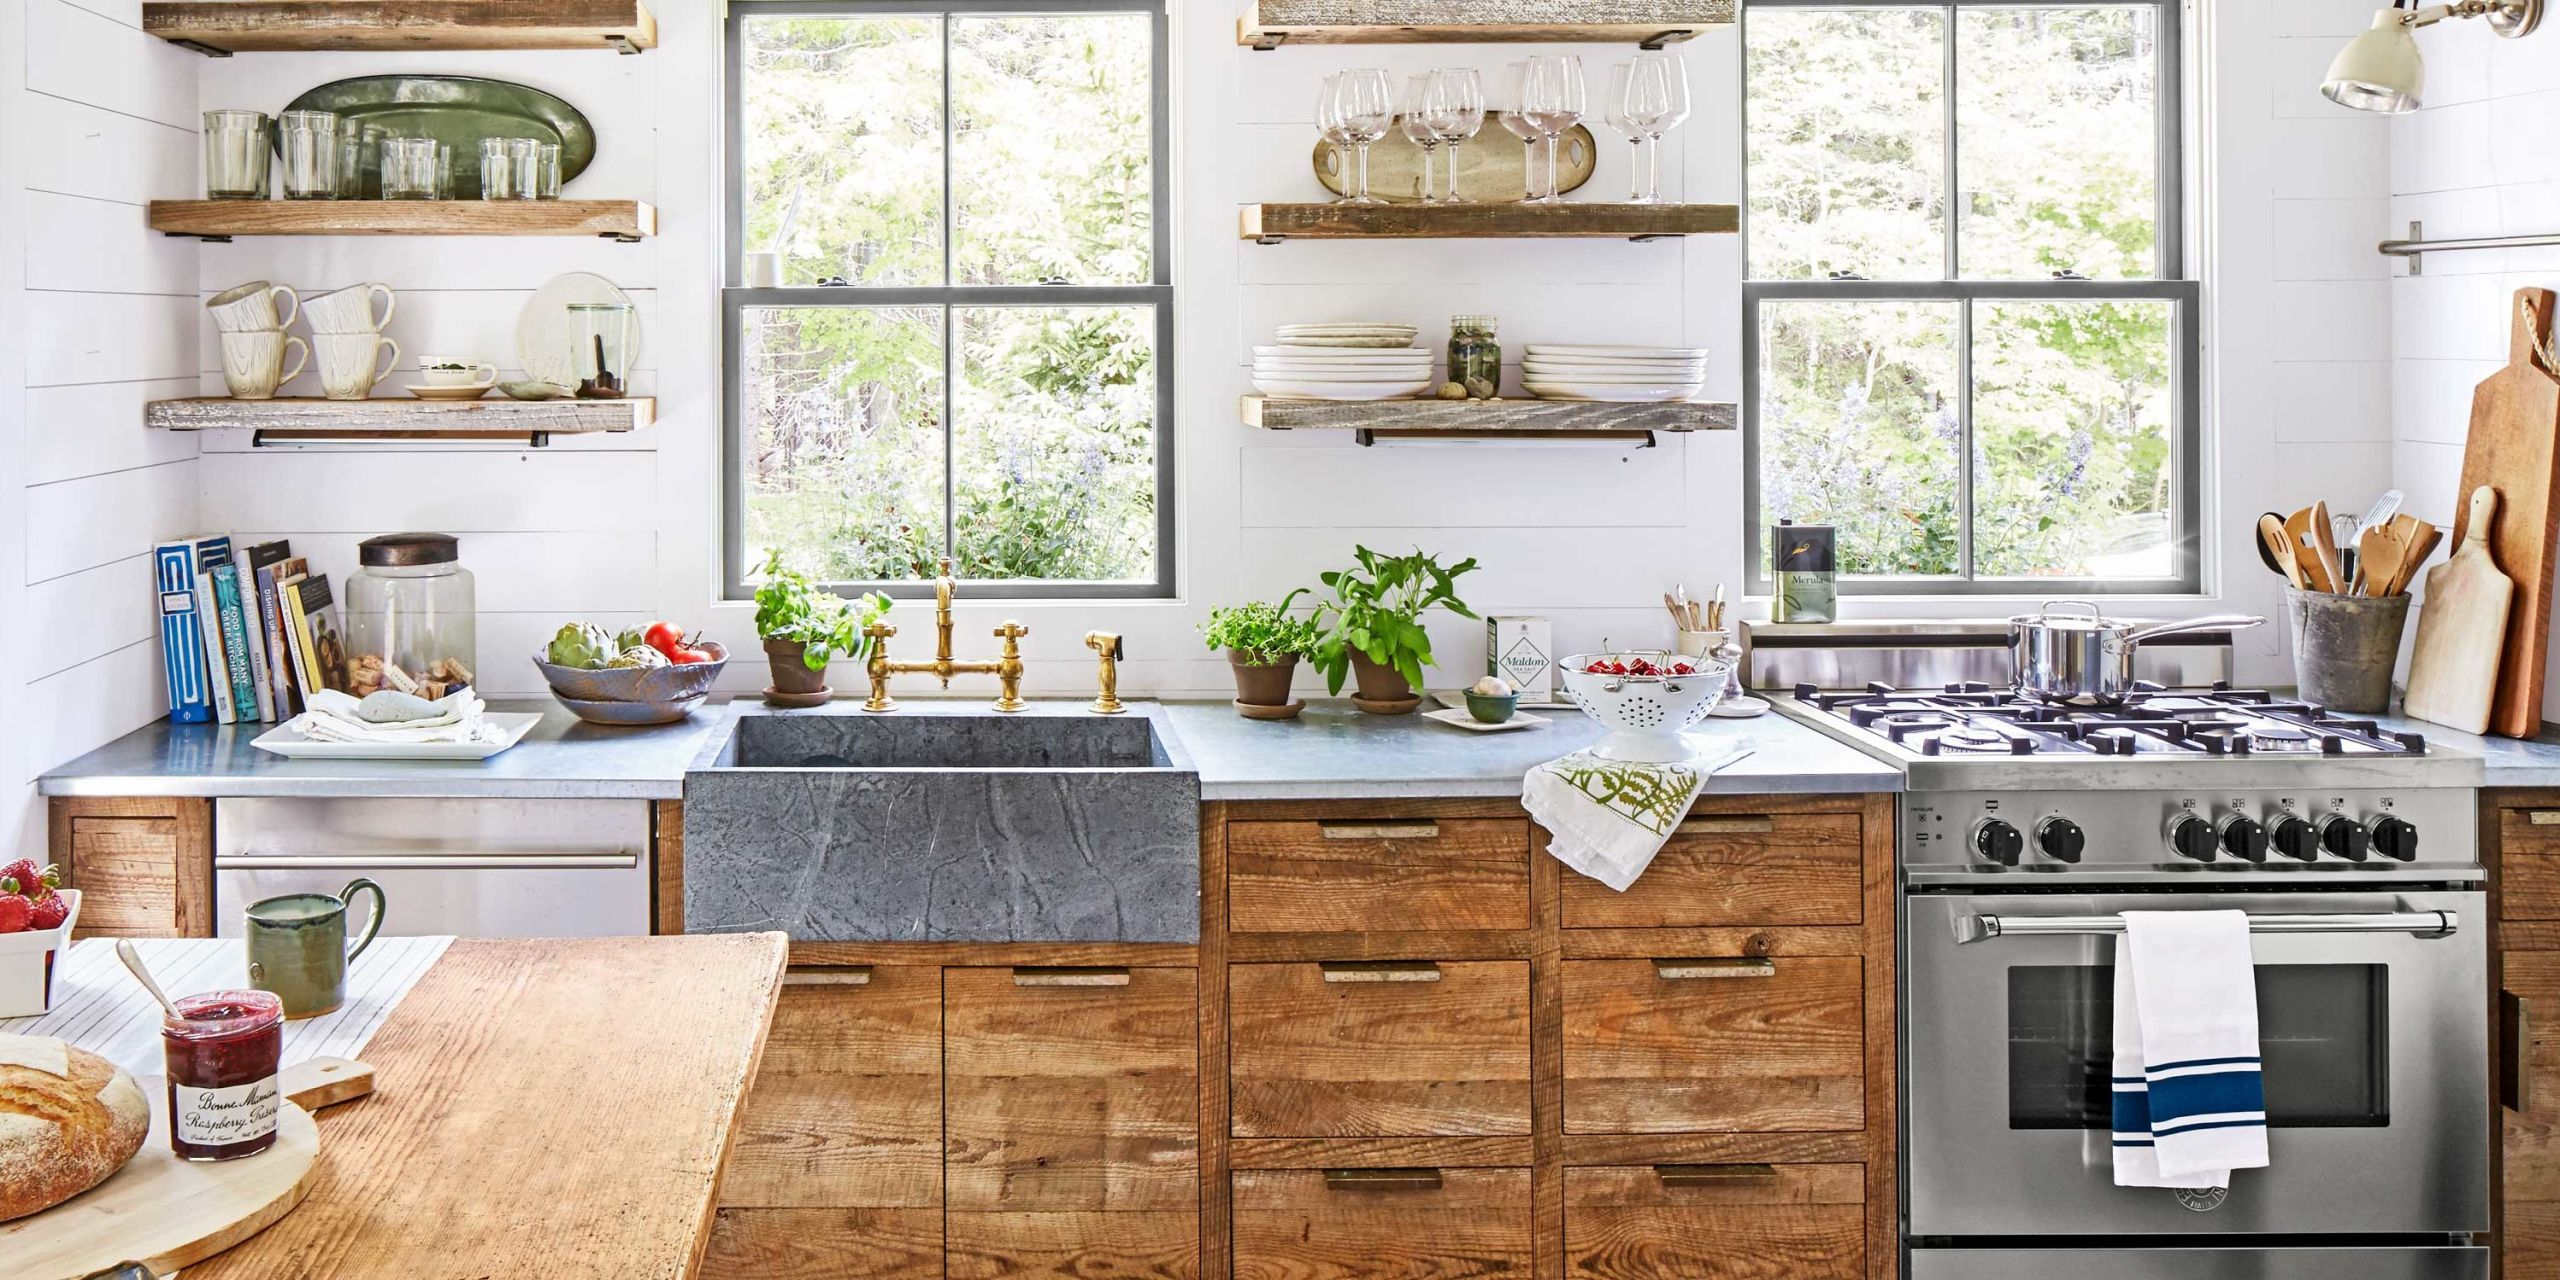 100  Kitchen Design Ideas   Pictures of Country Kitchen Decorating     From bold design choices to affordable appliances  our kitchen decorating  ideas and inspiration pictures will help make this everyone s favorite room  in the